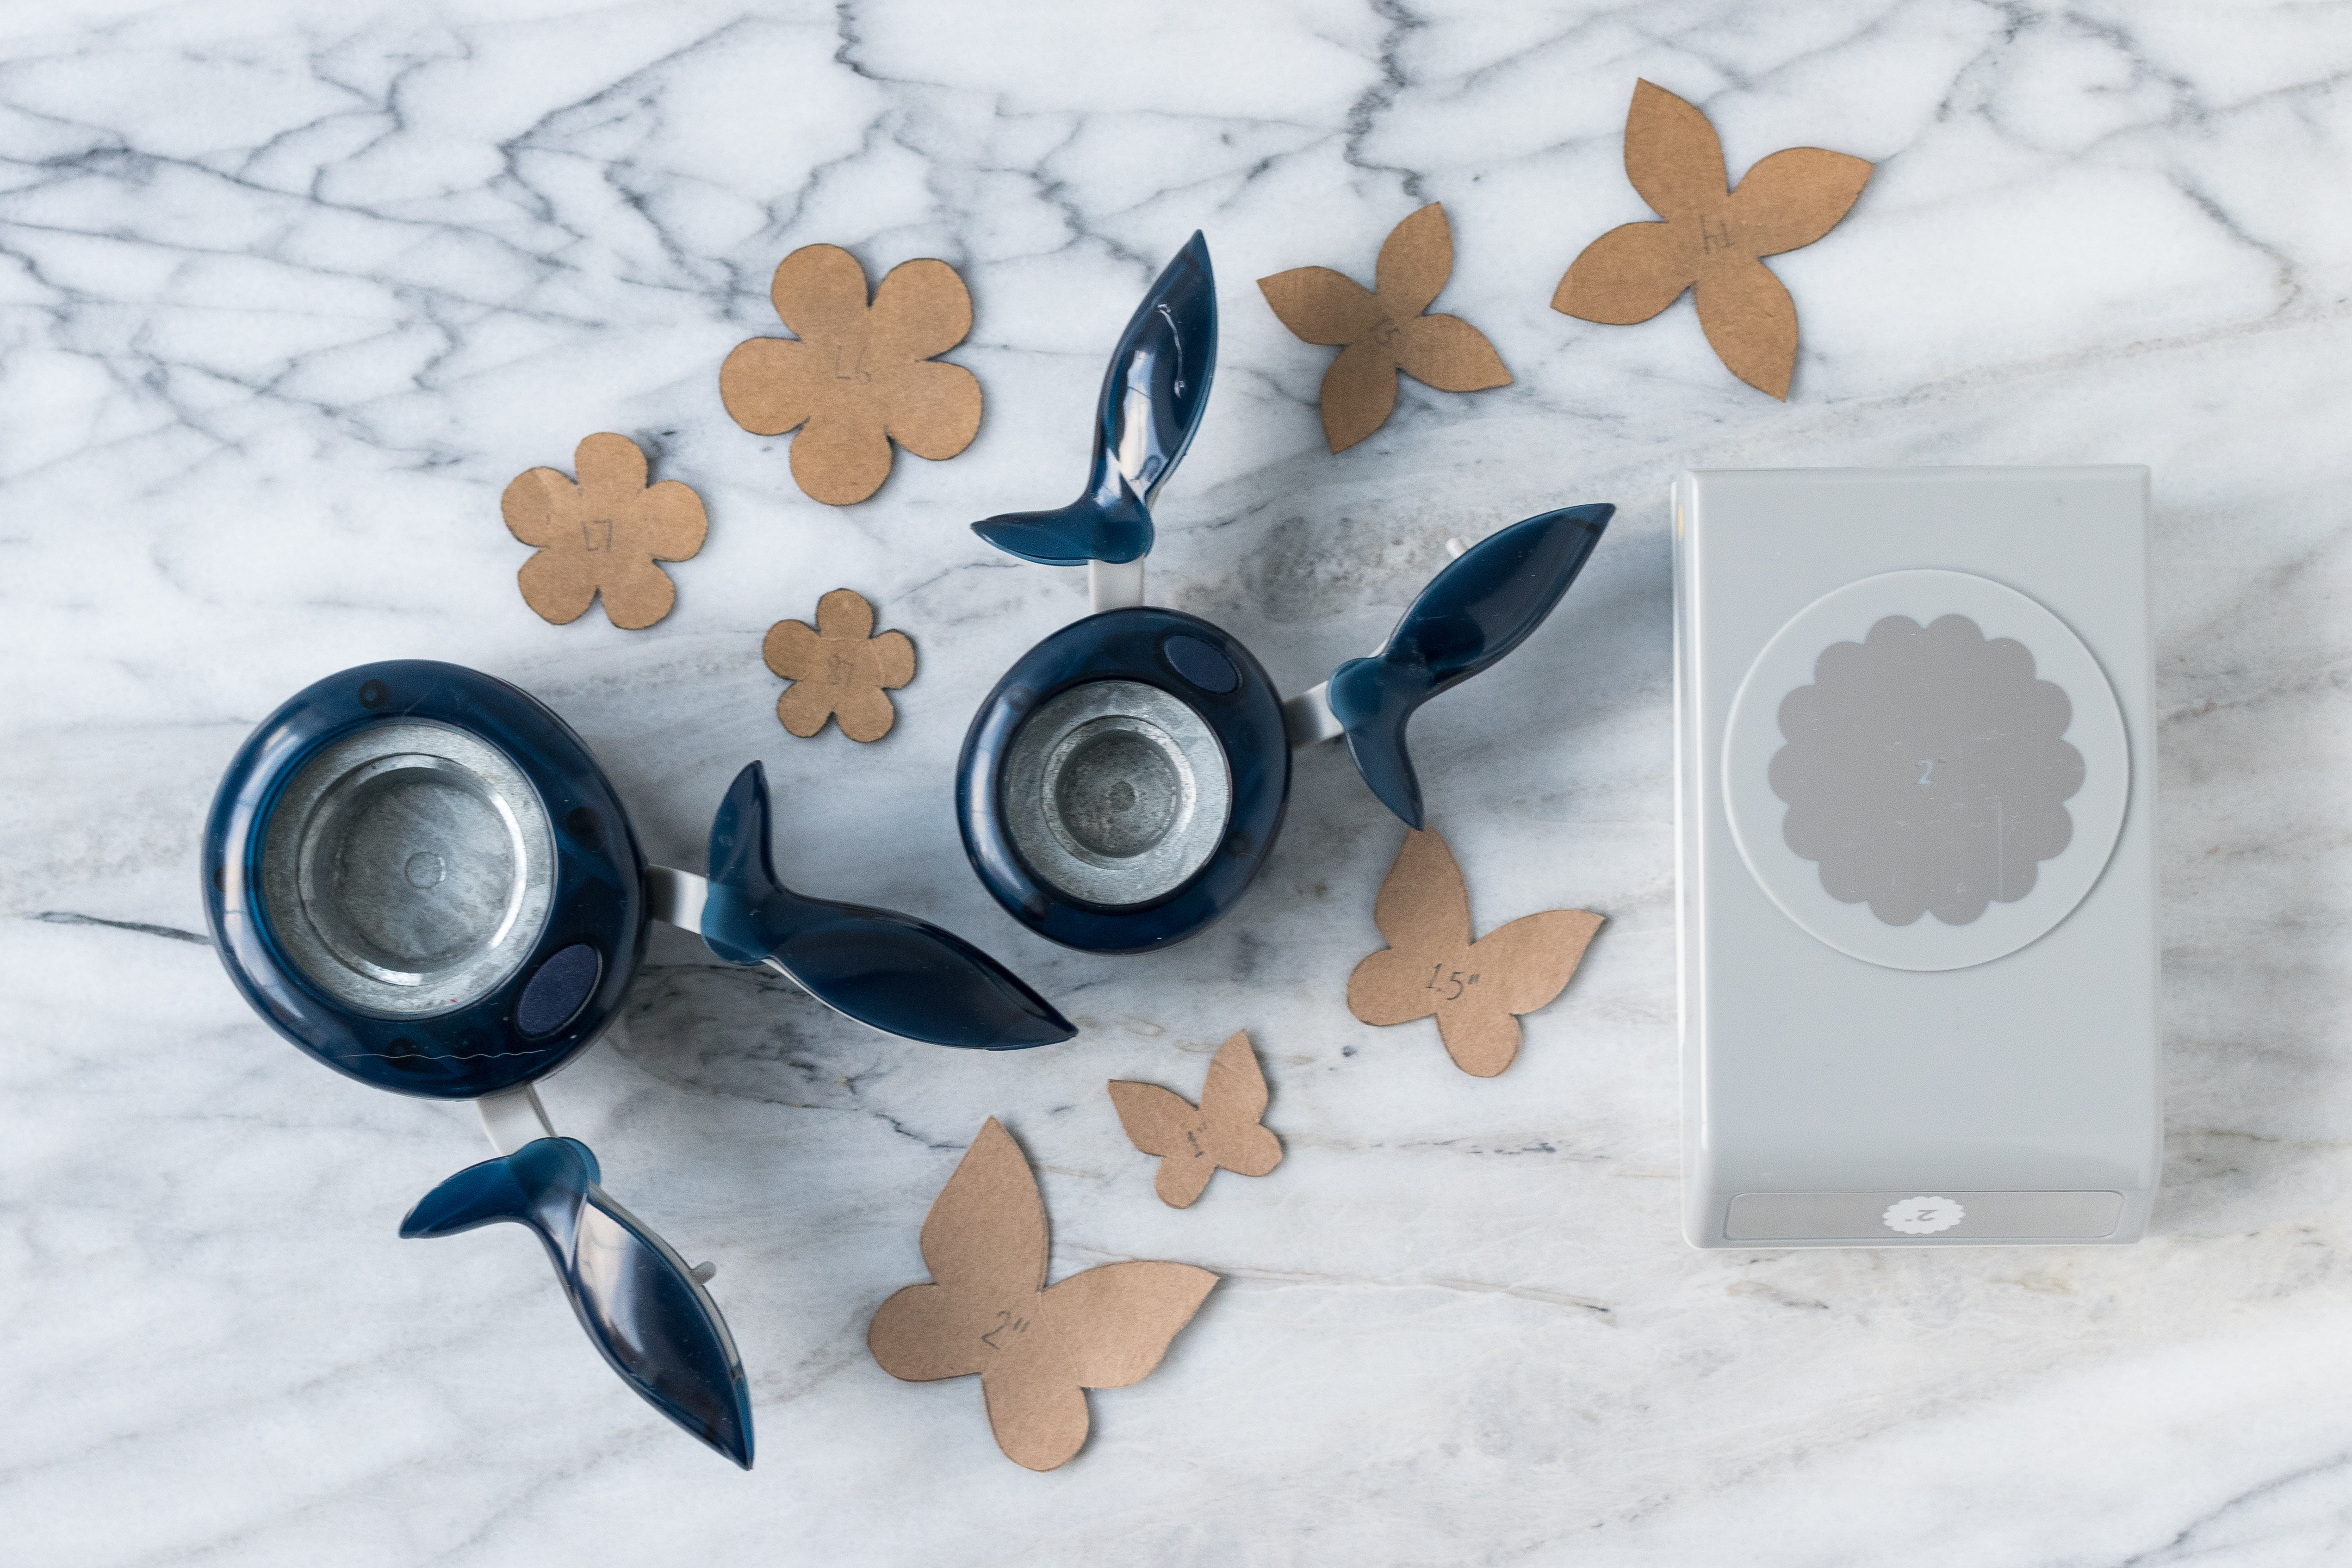 Paper punches and templates to create DIY scrapbook embellishments. #DIY #paperpunches #scrapbookembellishments | https://www.roseclearfield.com